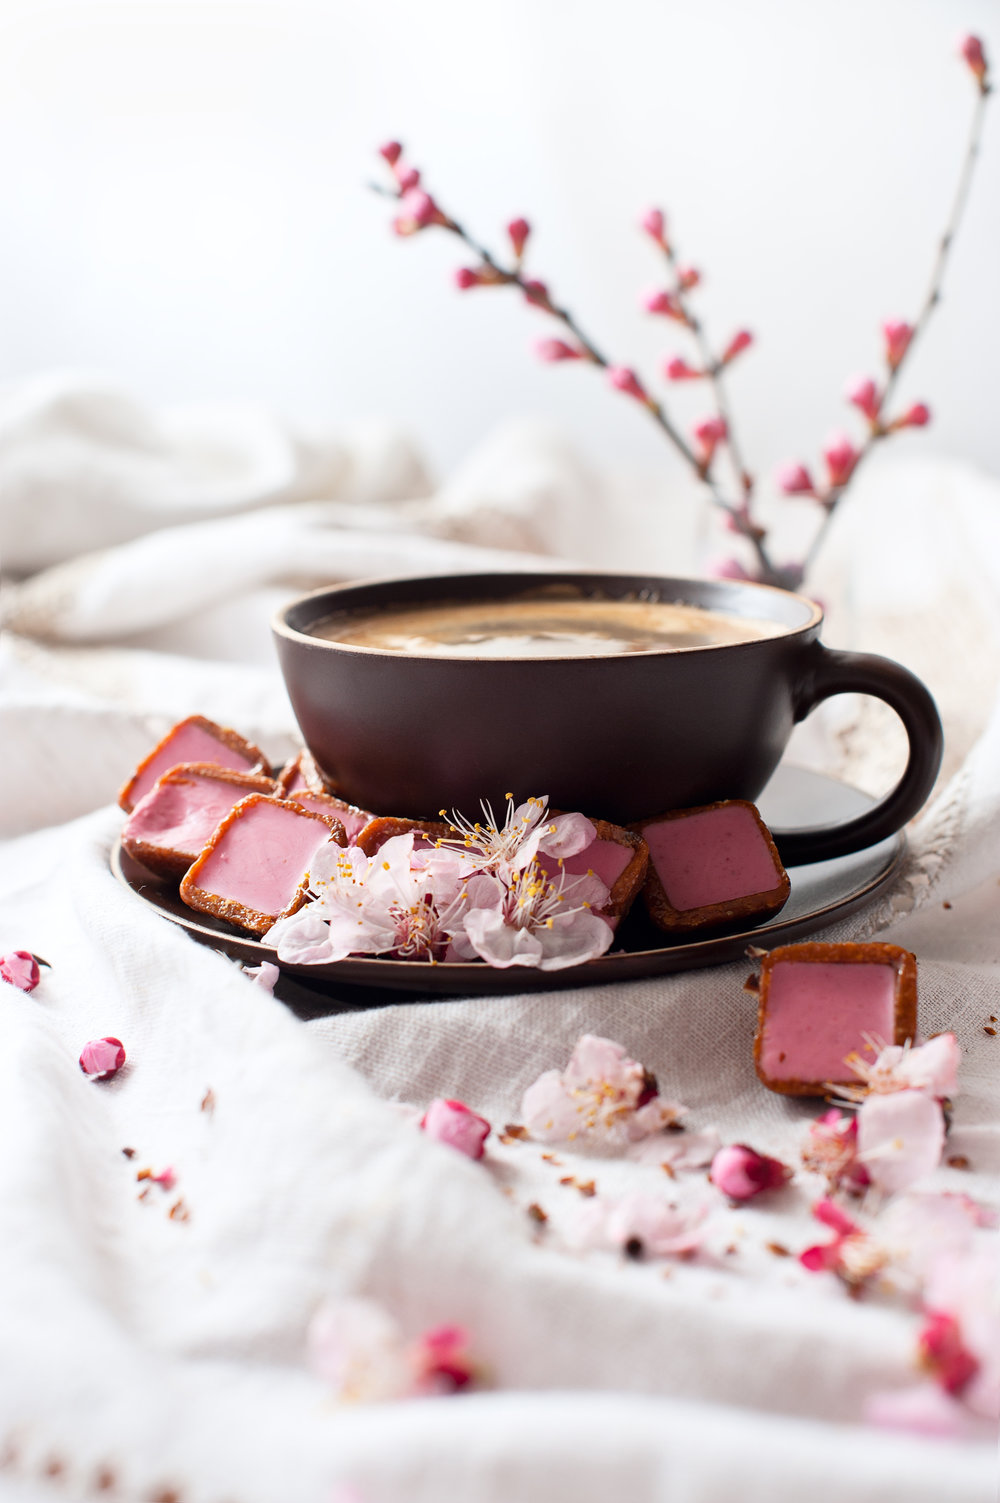 stock-photo-cup-of-coffee-with-cherry-blossom-131304704.jpg